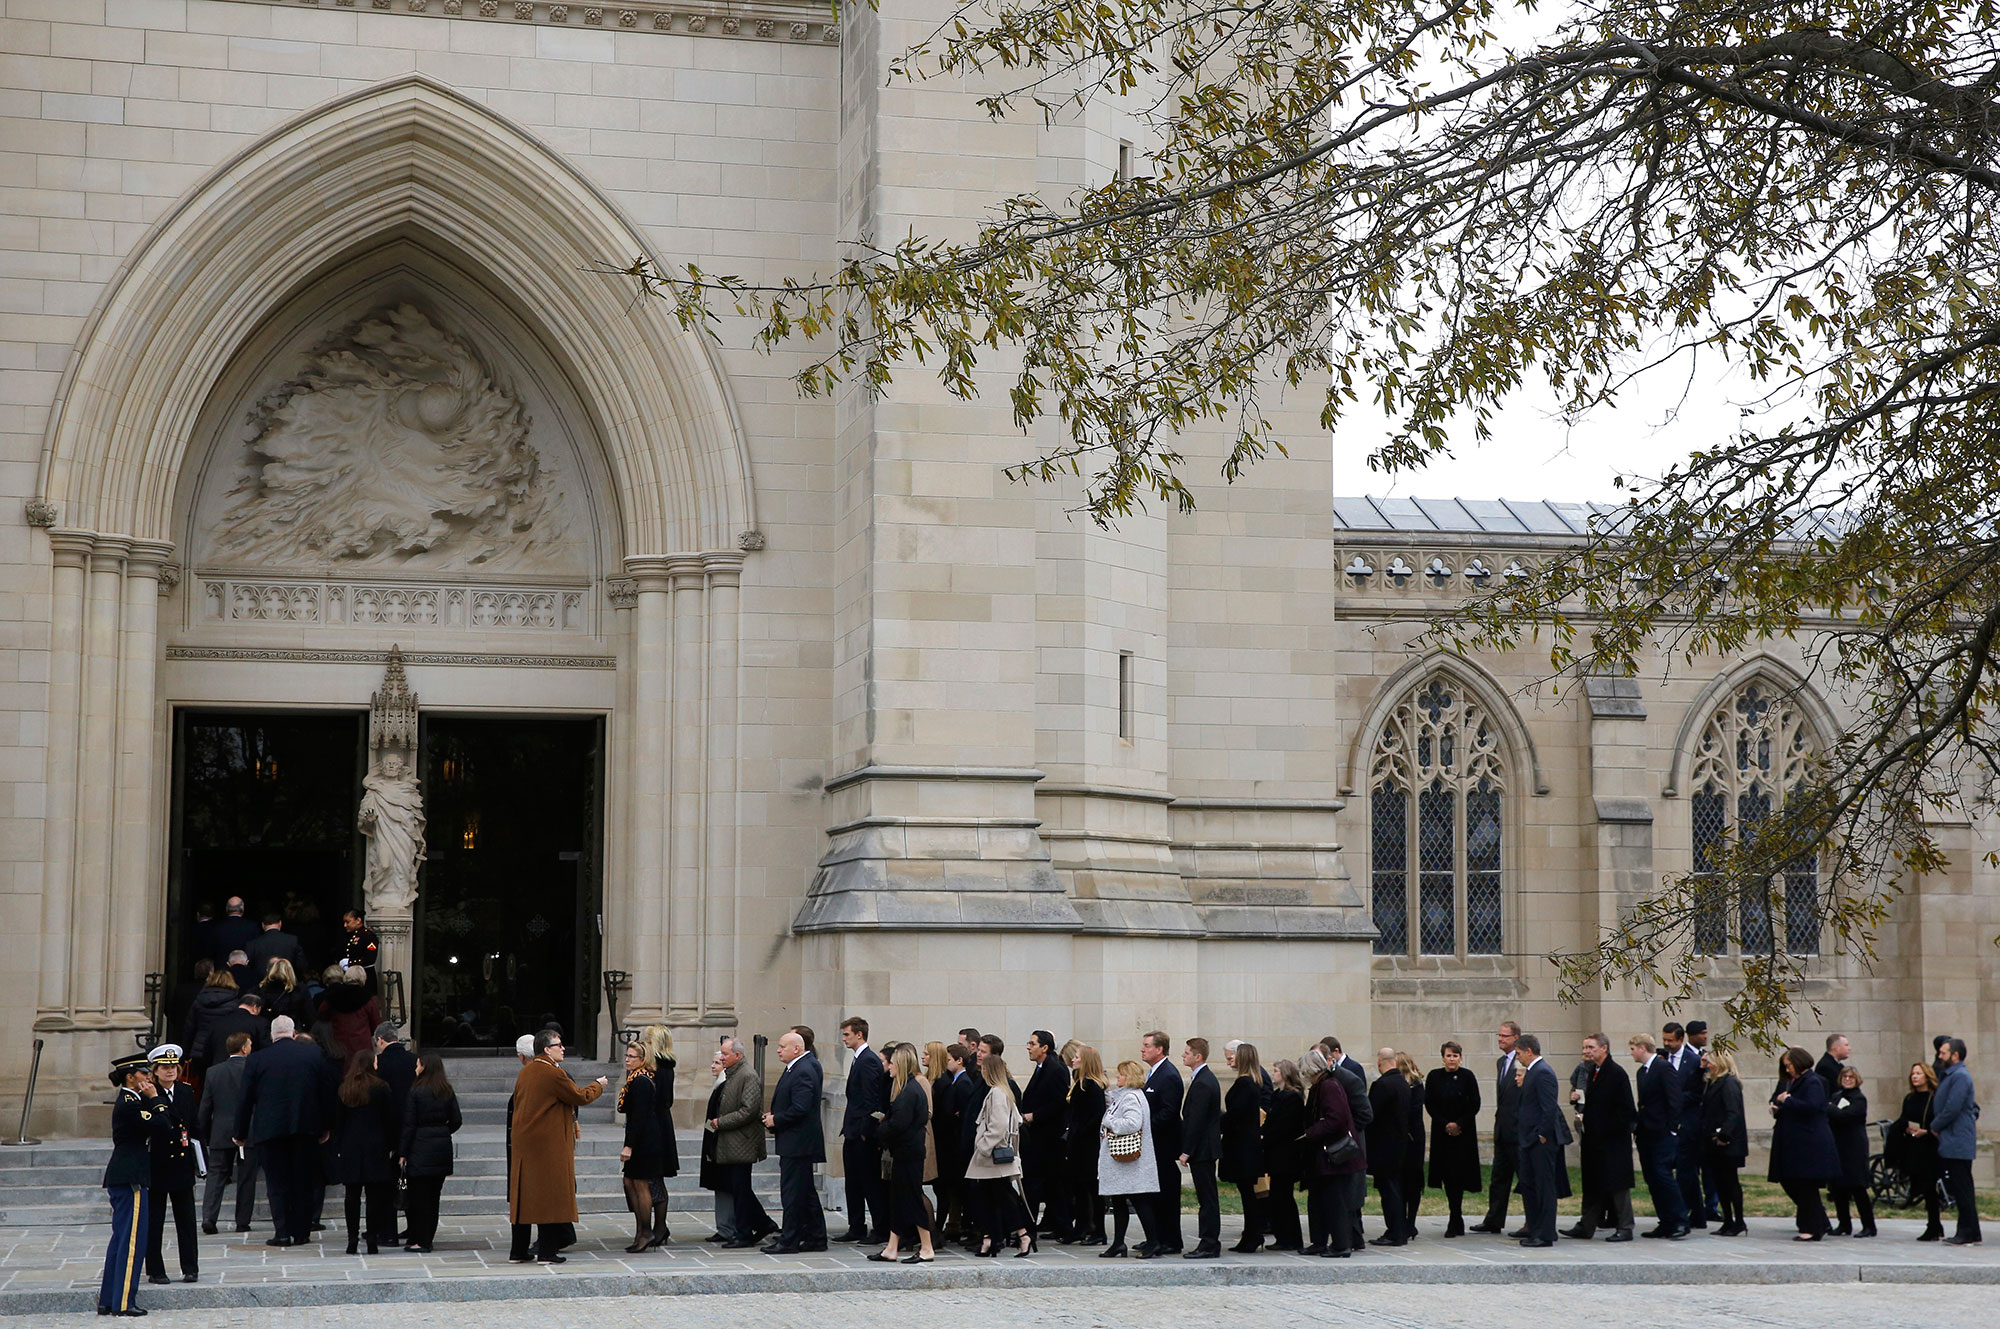 "<div class=""meta image-caption""><div class=""origin-logo origin-image none""><span>none</span></div><span class=""caption-text"">Mourners file into the Washington National Cathedral before the State Funeral for former President George H.W. Bush in Washington, Wednesday, Dec. 5, 2018. (Patrick Semansky/AP Photo)</span></div>"